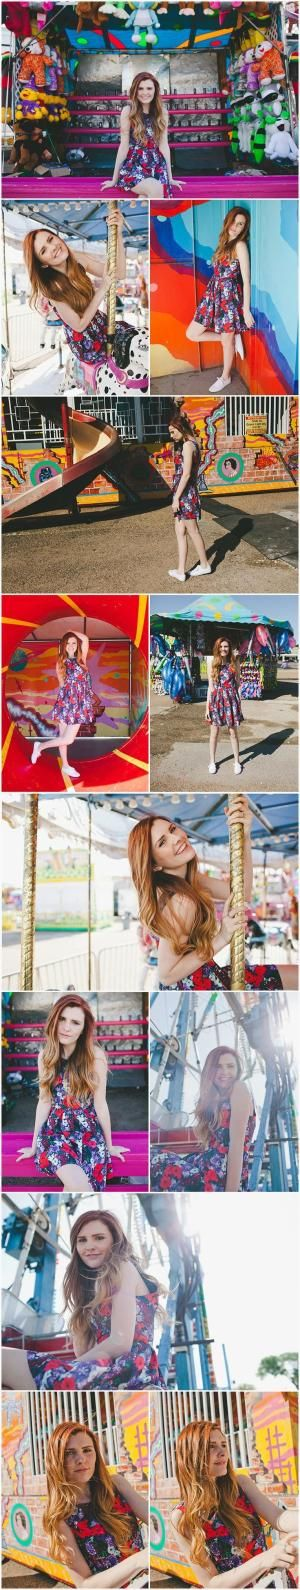 Senior Picture ideas. Carnival! by jamie_1